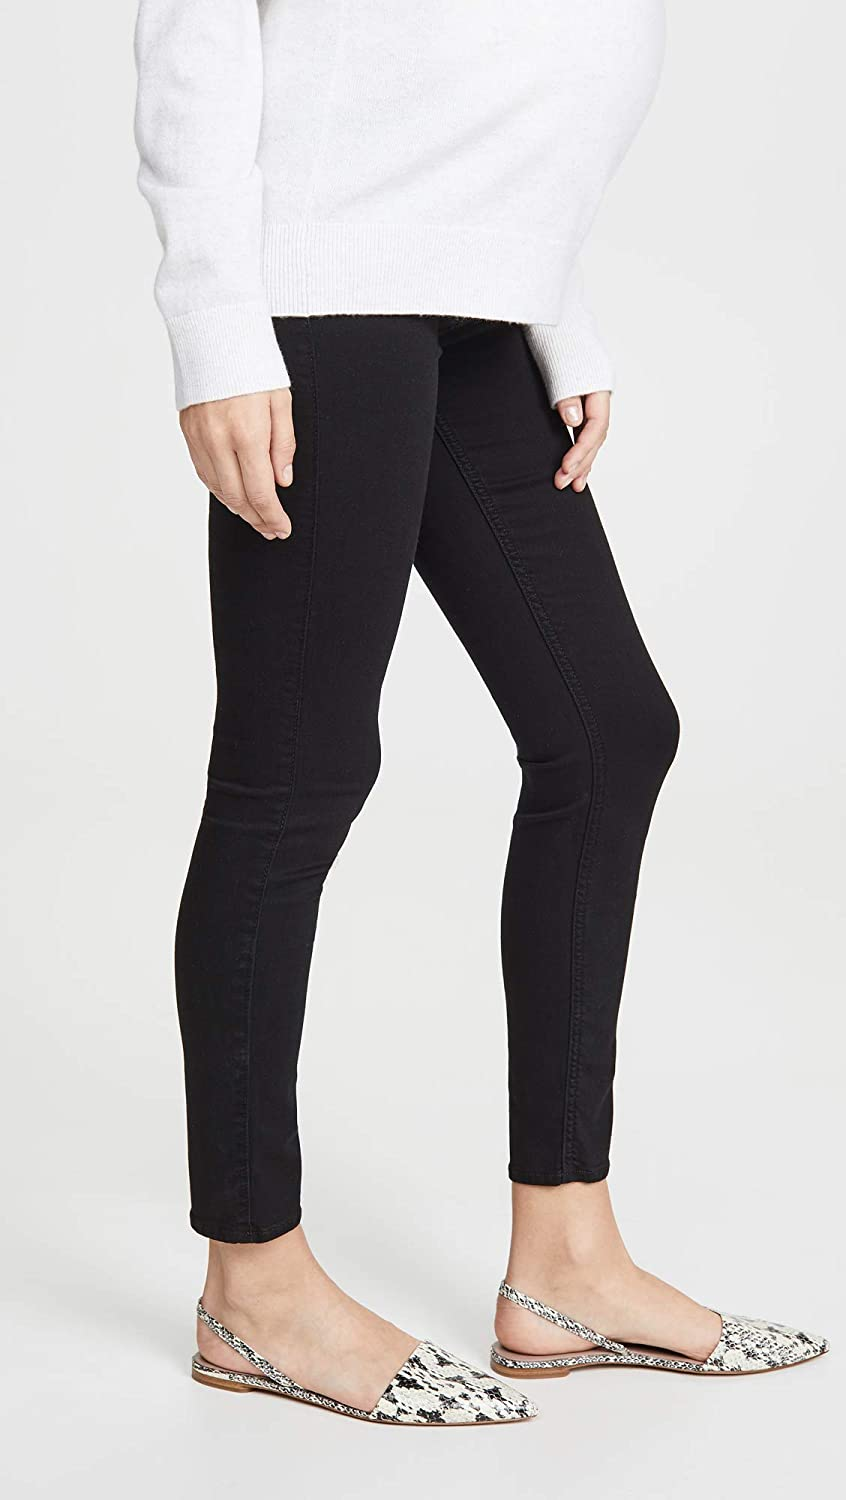 7 For All Mankind Women's The Ankle Skinny Maternity Jeans